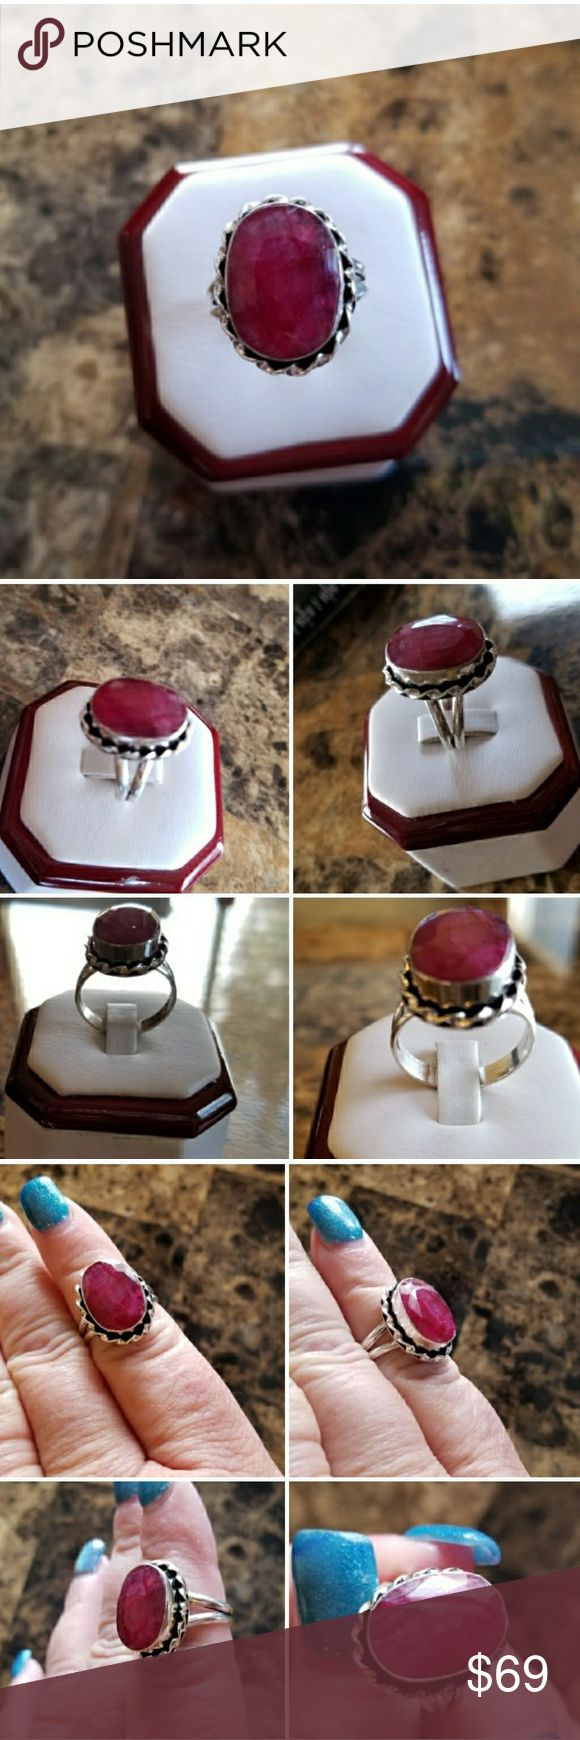 Genuine 6ct Natural Ruby Ring Size 8 Such a deep, beautiful color!! Set in 925 stamped Solid Sterling Silver. Please see all pictures for more detail and measurement. Brand New. Never Worn. WHOLESALE Prices Always!! Jewelry Rings